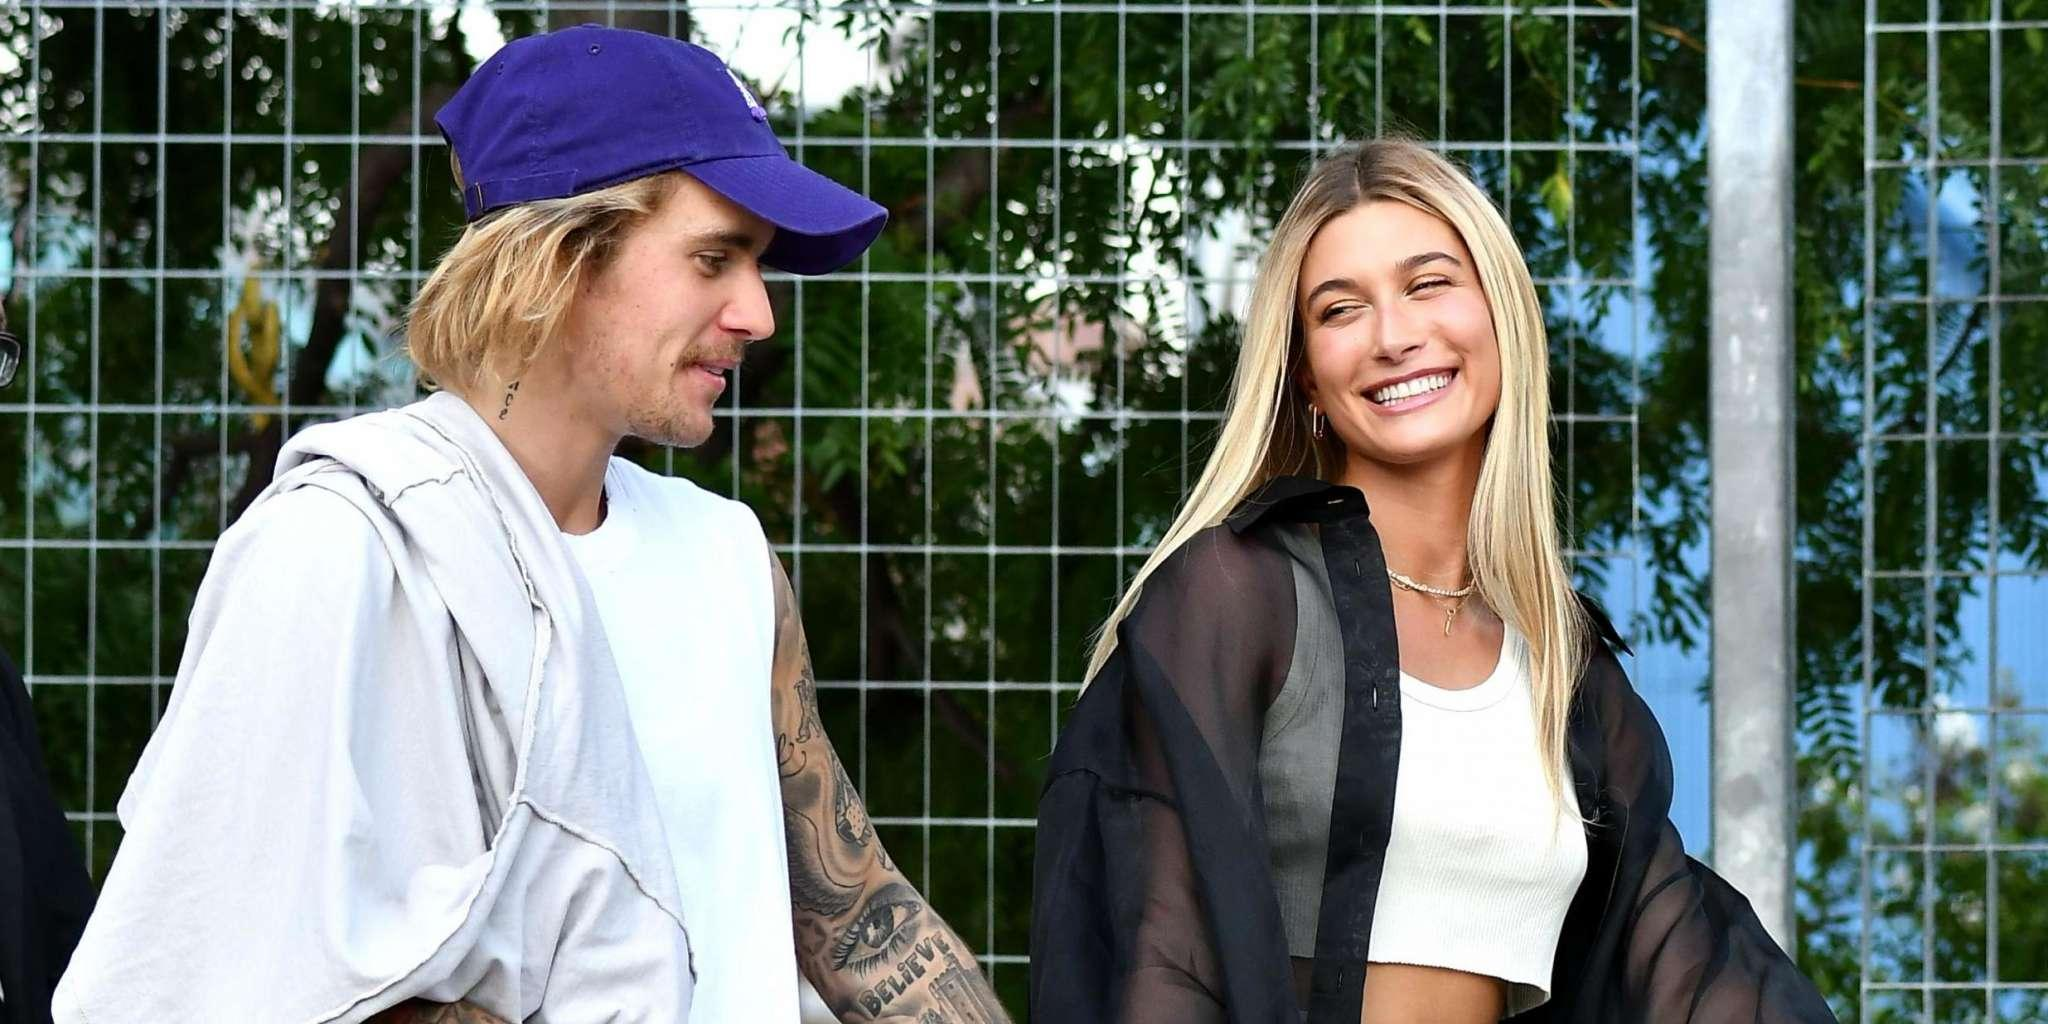 Justin Bieber Is Looking Forward To Spoiling Wife Hailey Baldwin With Jewelry And Other Presents On Christmas!